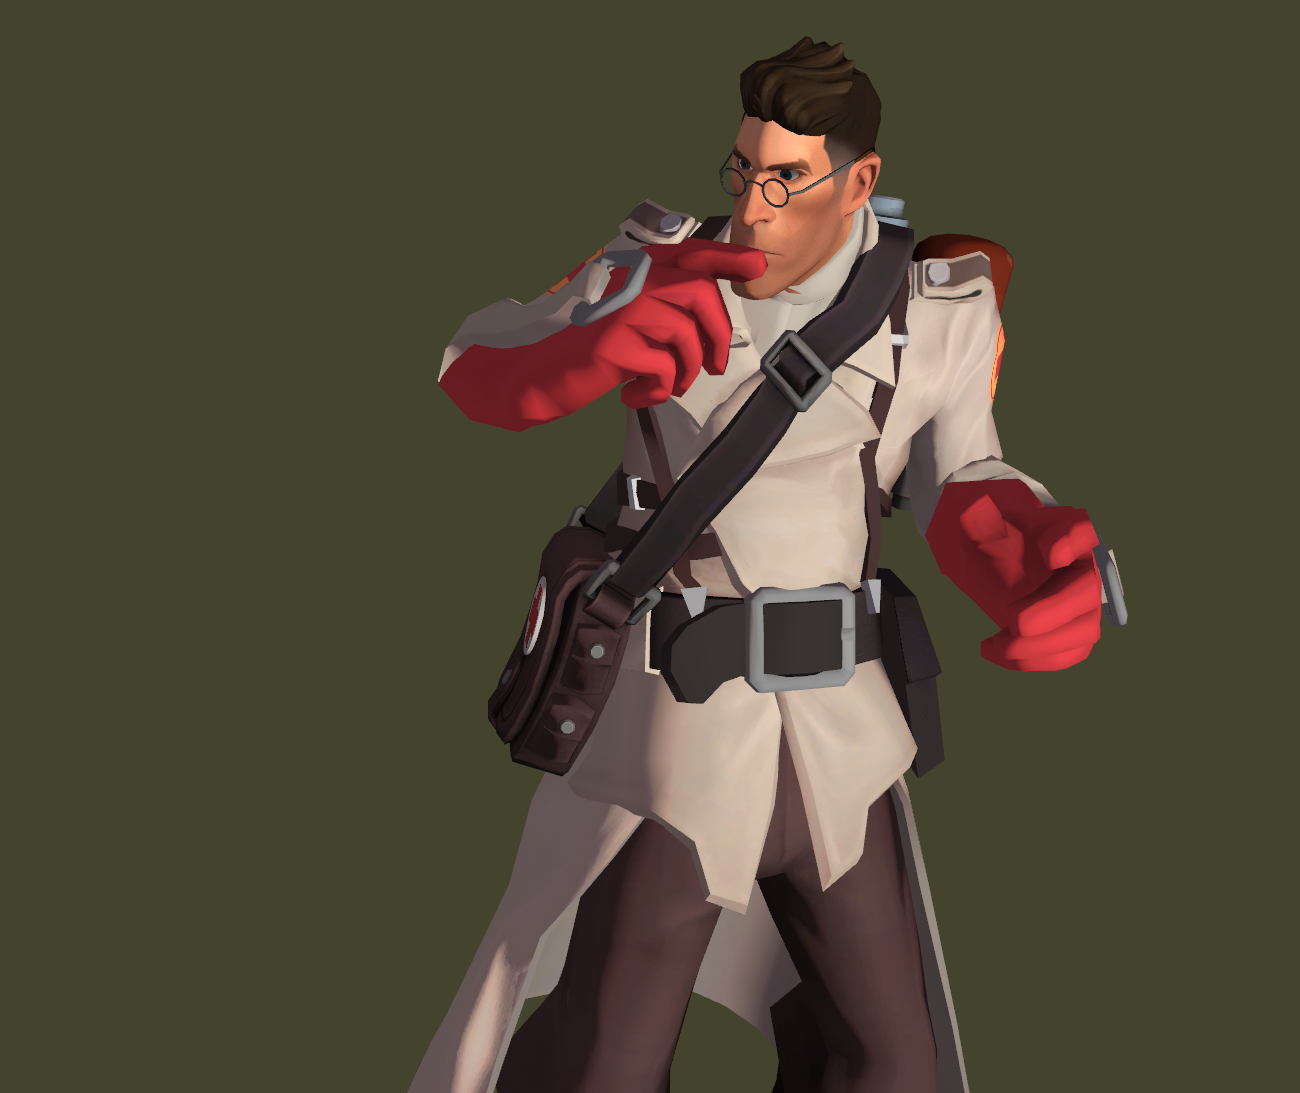 The ward tf2